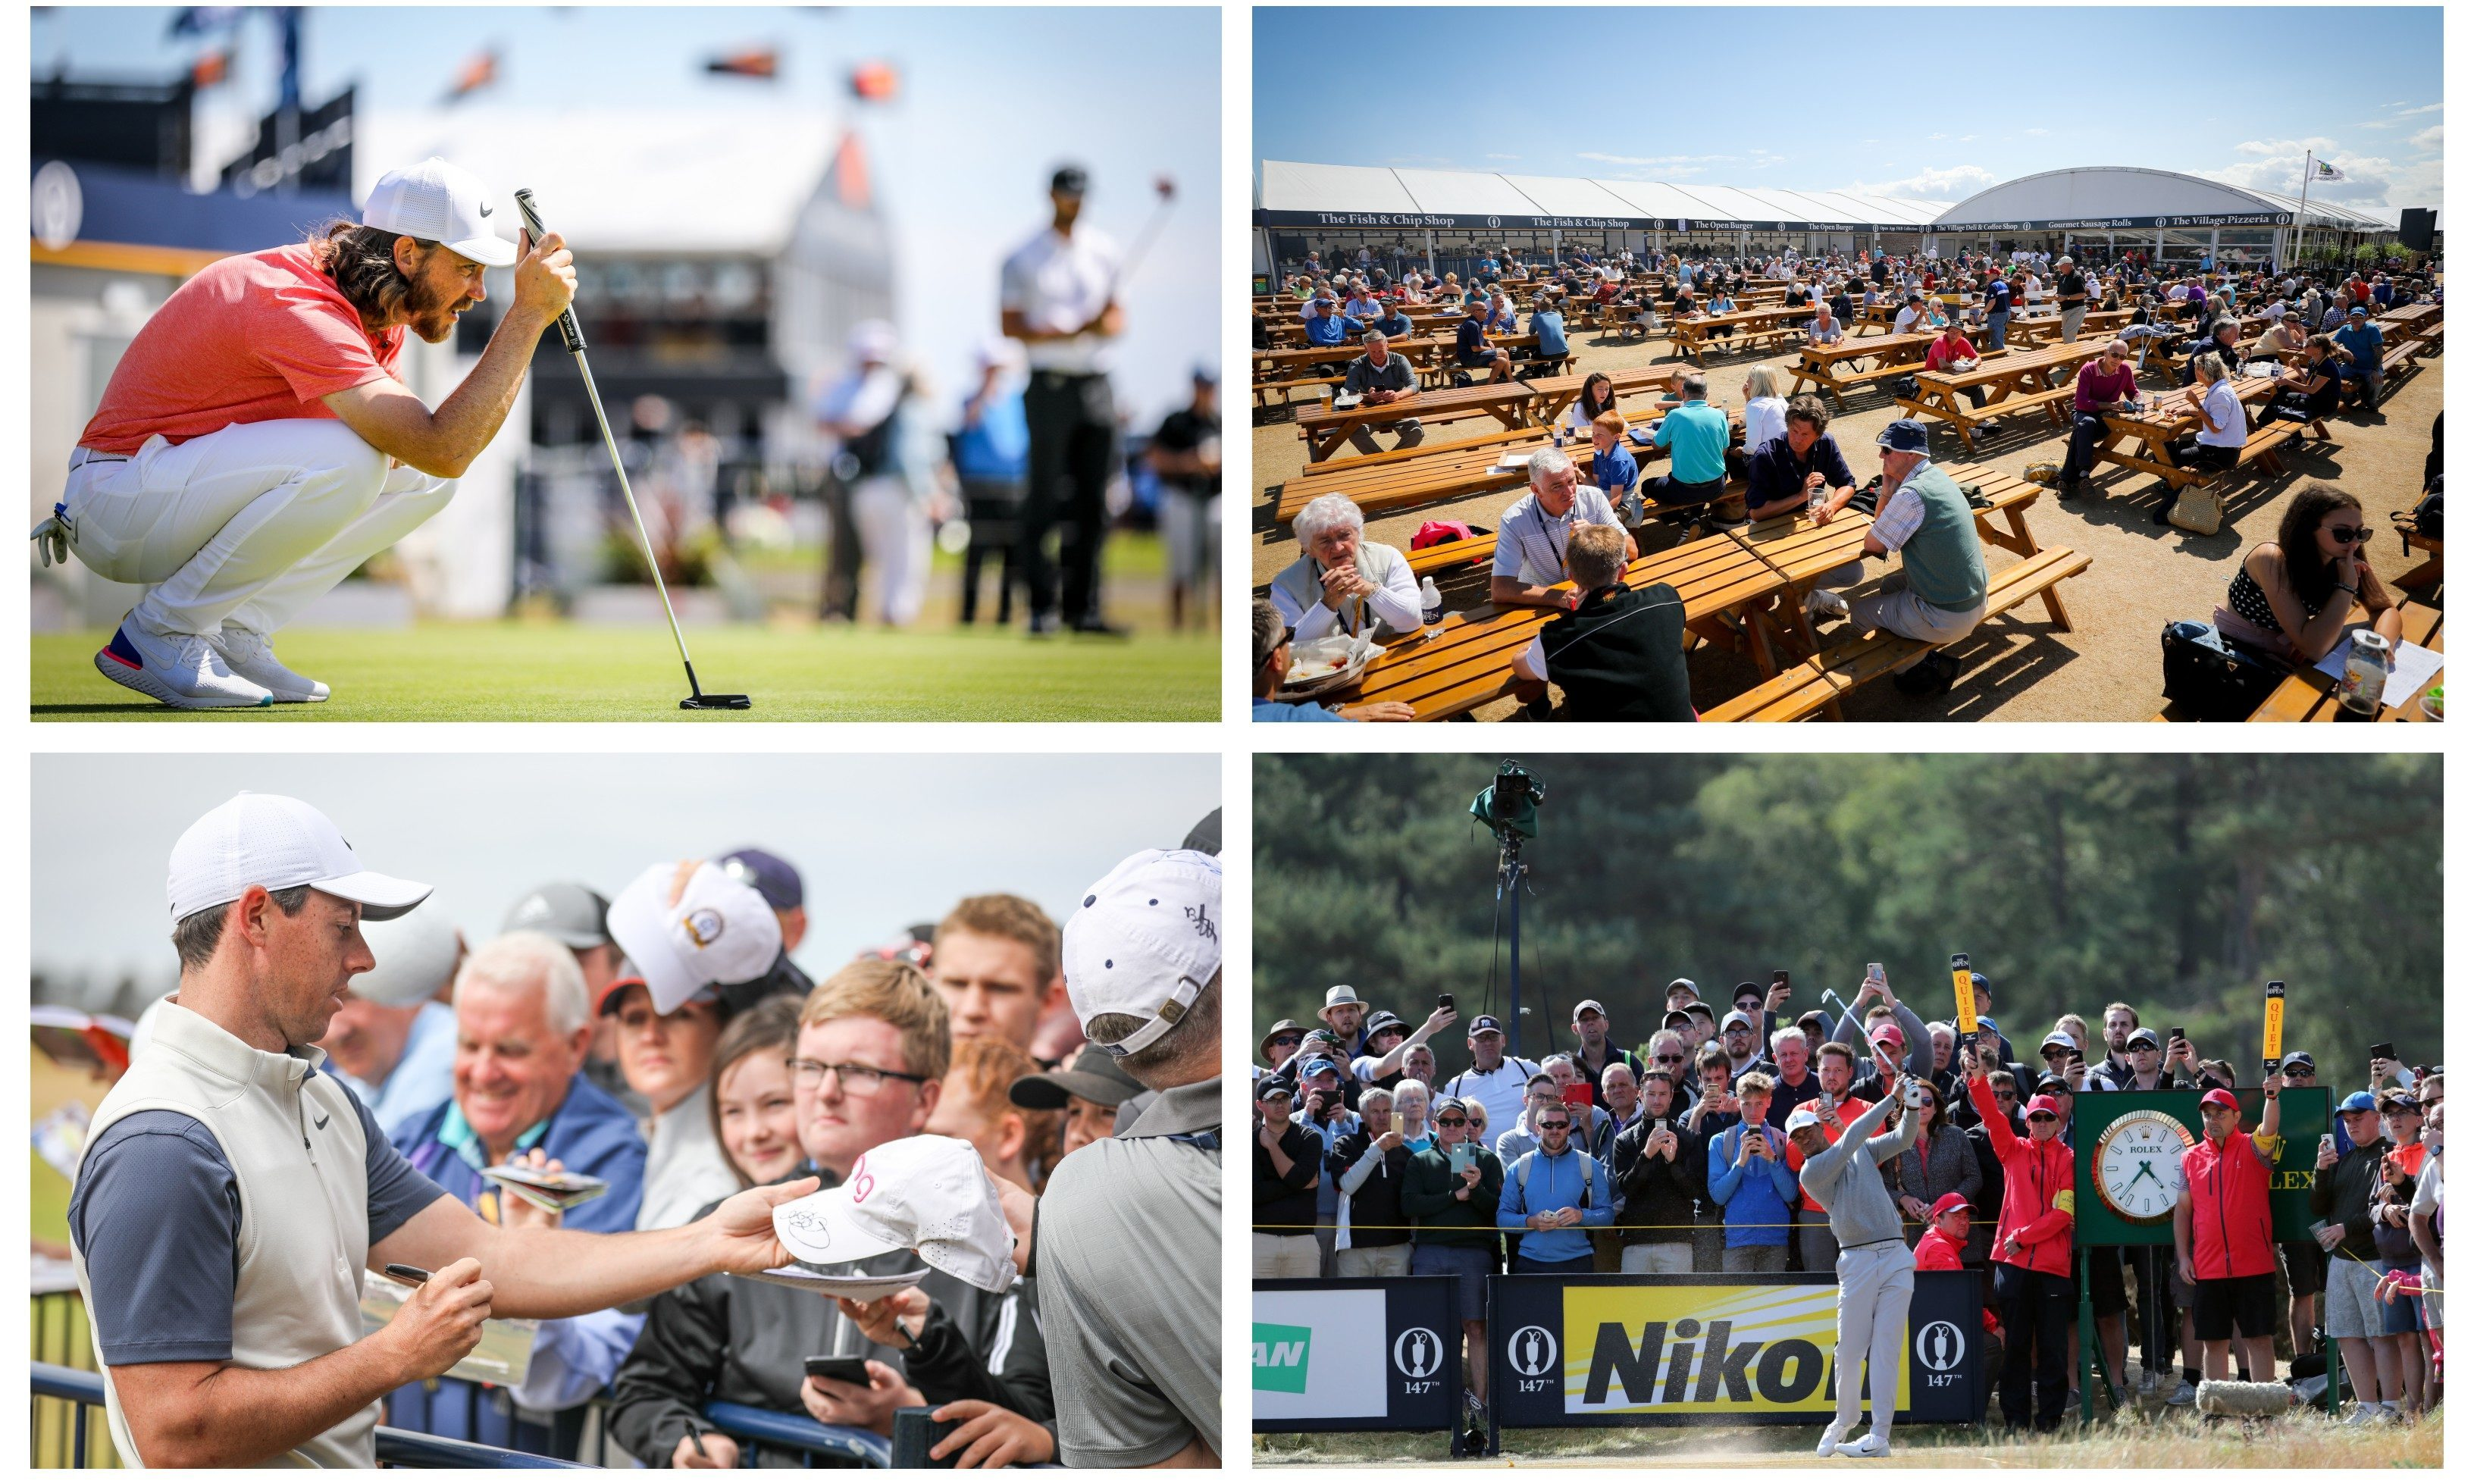 Big crowds showed up for the fourth day of practice at the Open ahead of the competition kicking off on Thursday.